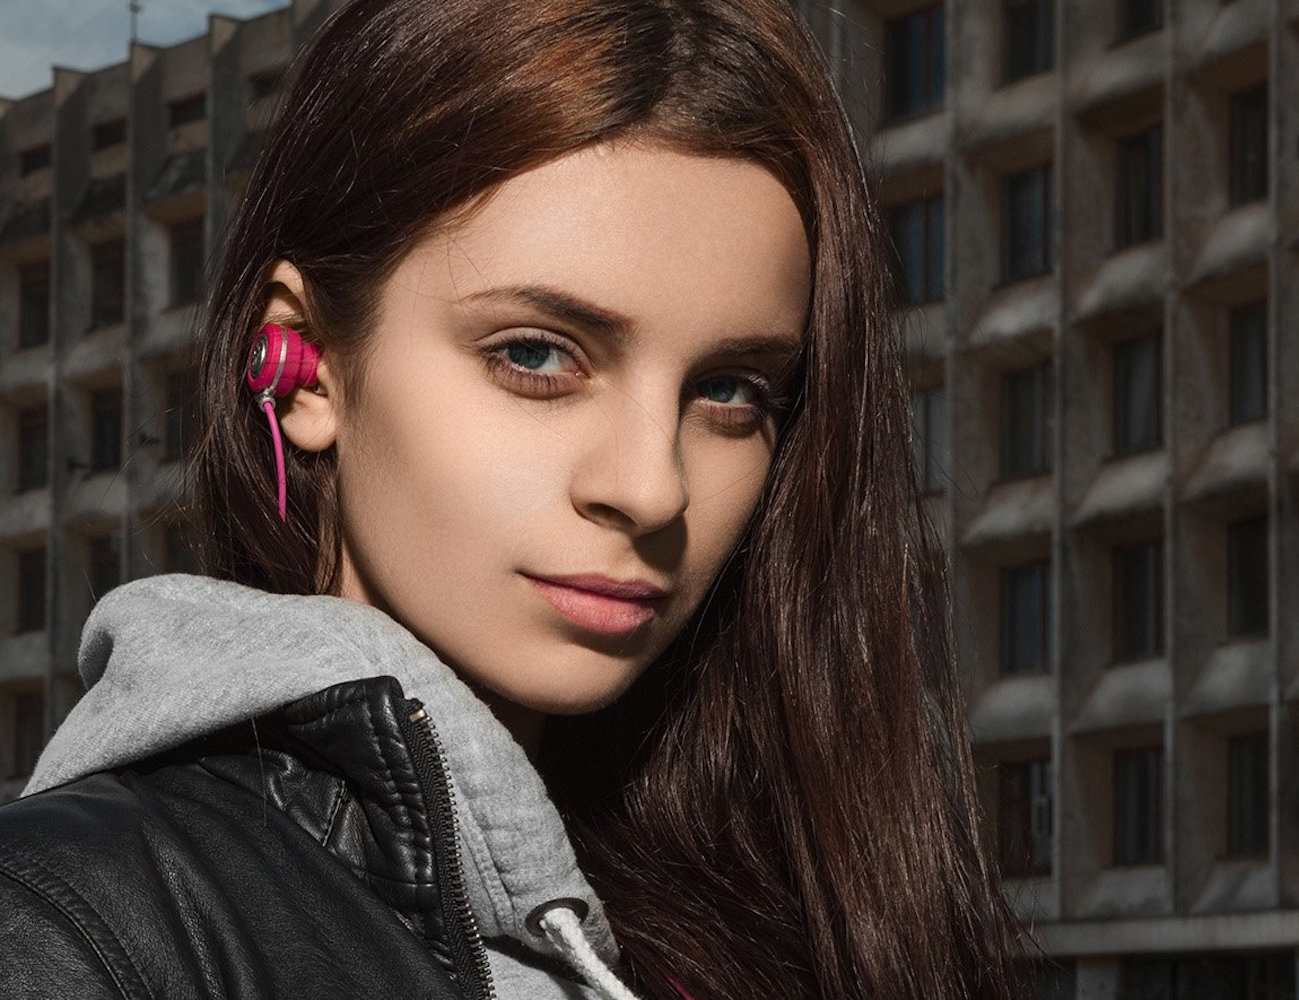 Kameleon Series Pink Bluetooth Earbuds by NOIZY BRANDS 01